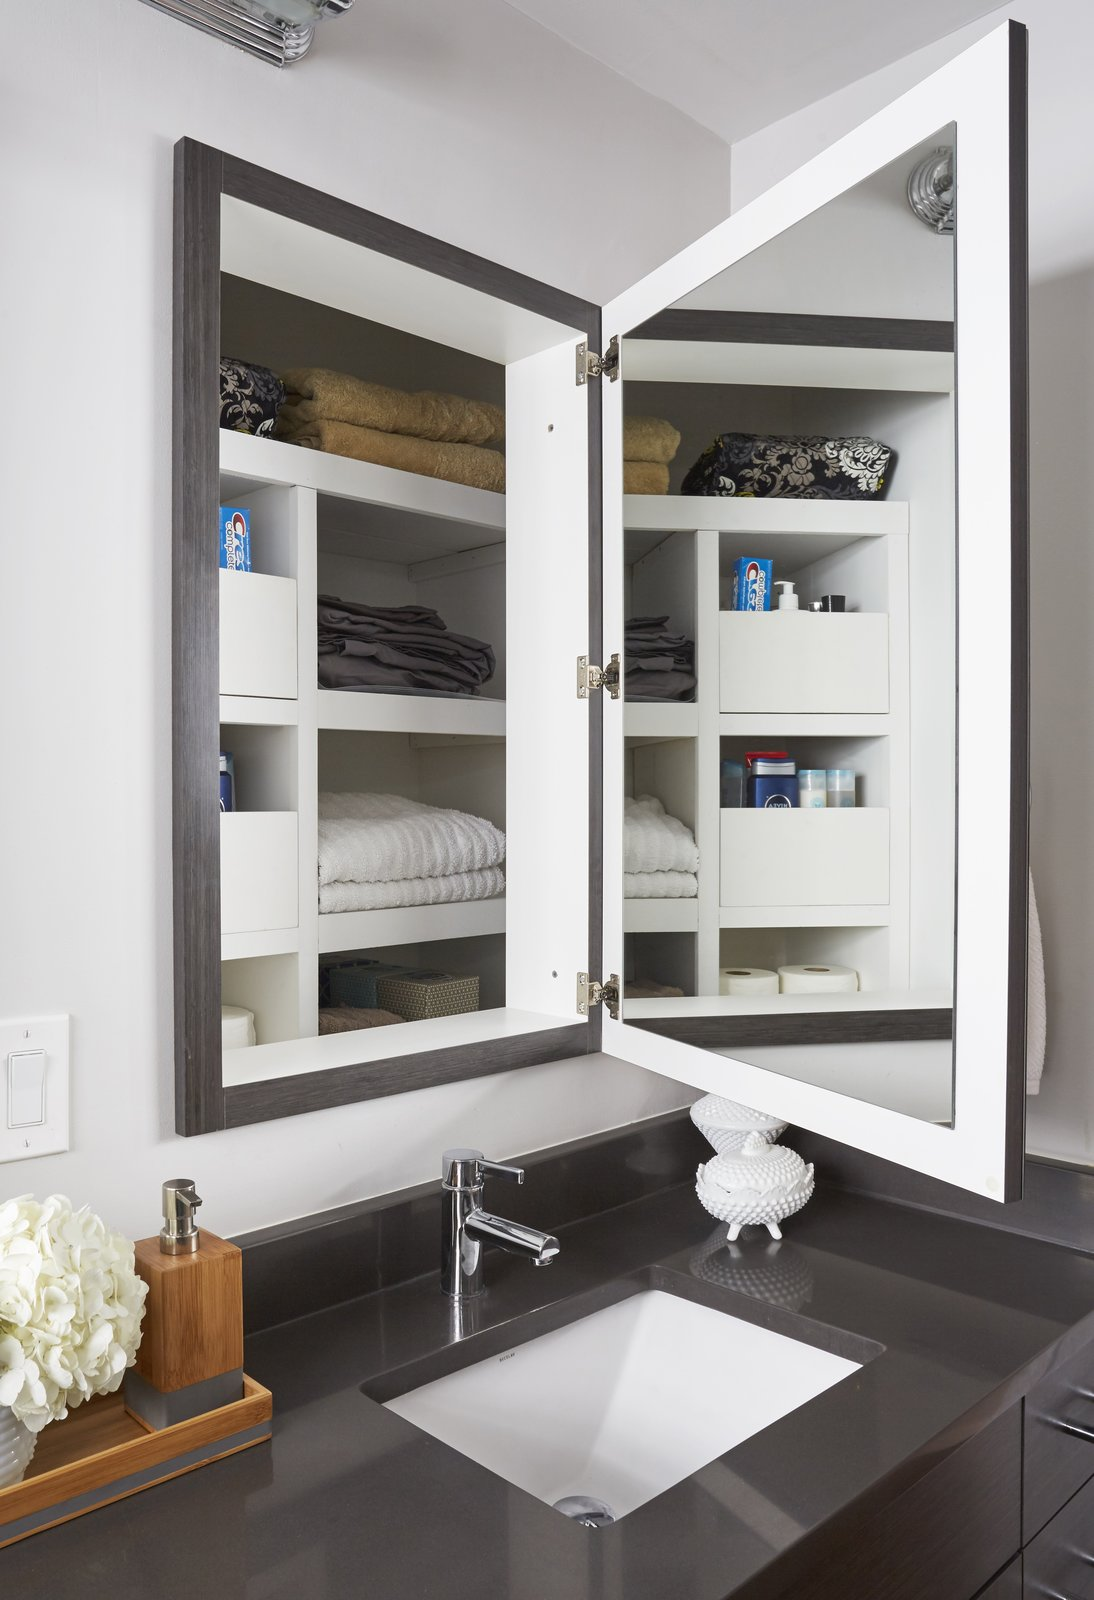 Though they made these changes to the vanity area, they preserved the depth behind the medicine cabinets for linen storage. Tagged: Bath Room, Wall Lighting, and Undermount Sink.  Photo 10 of 12 in Clever Storage Solutions and a Shifted Layout Revive This 1950s Chicago Home